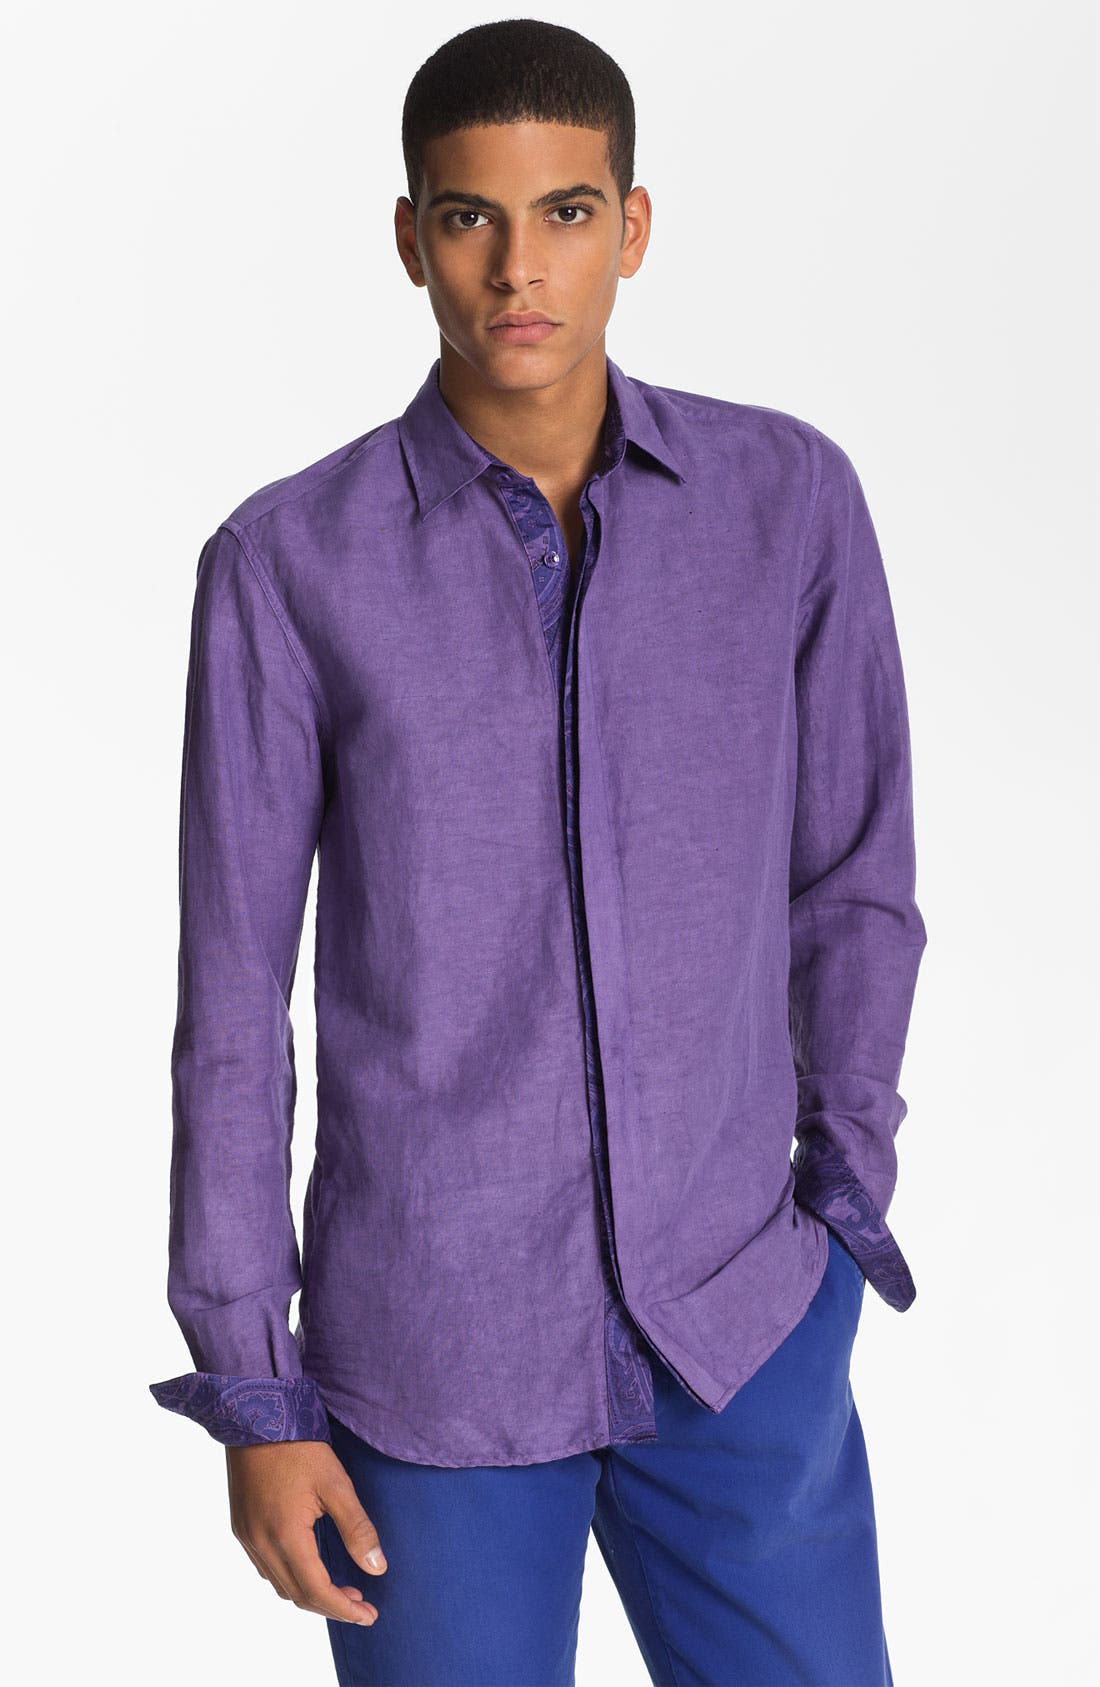 Alternate Image 1 Selected - Etro 'Camicia' Cotton & Linen Shirt